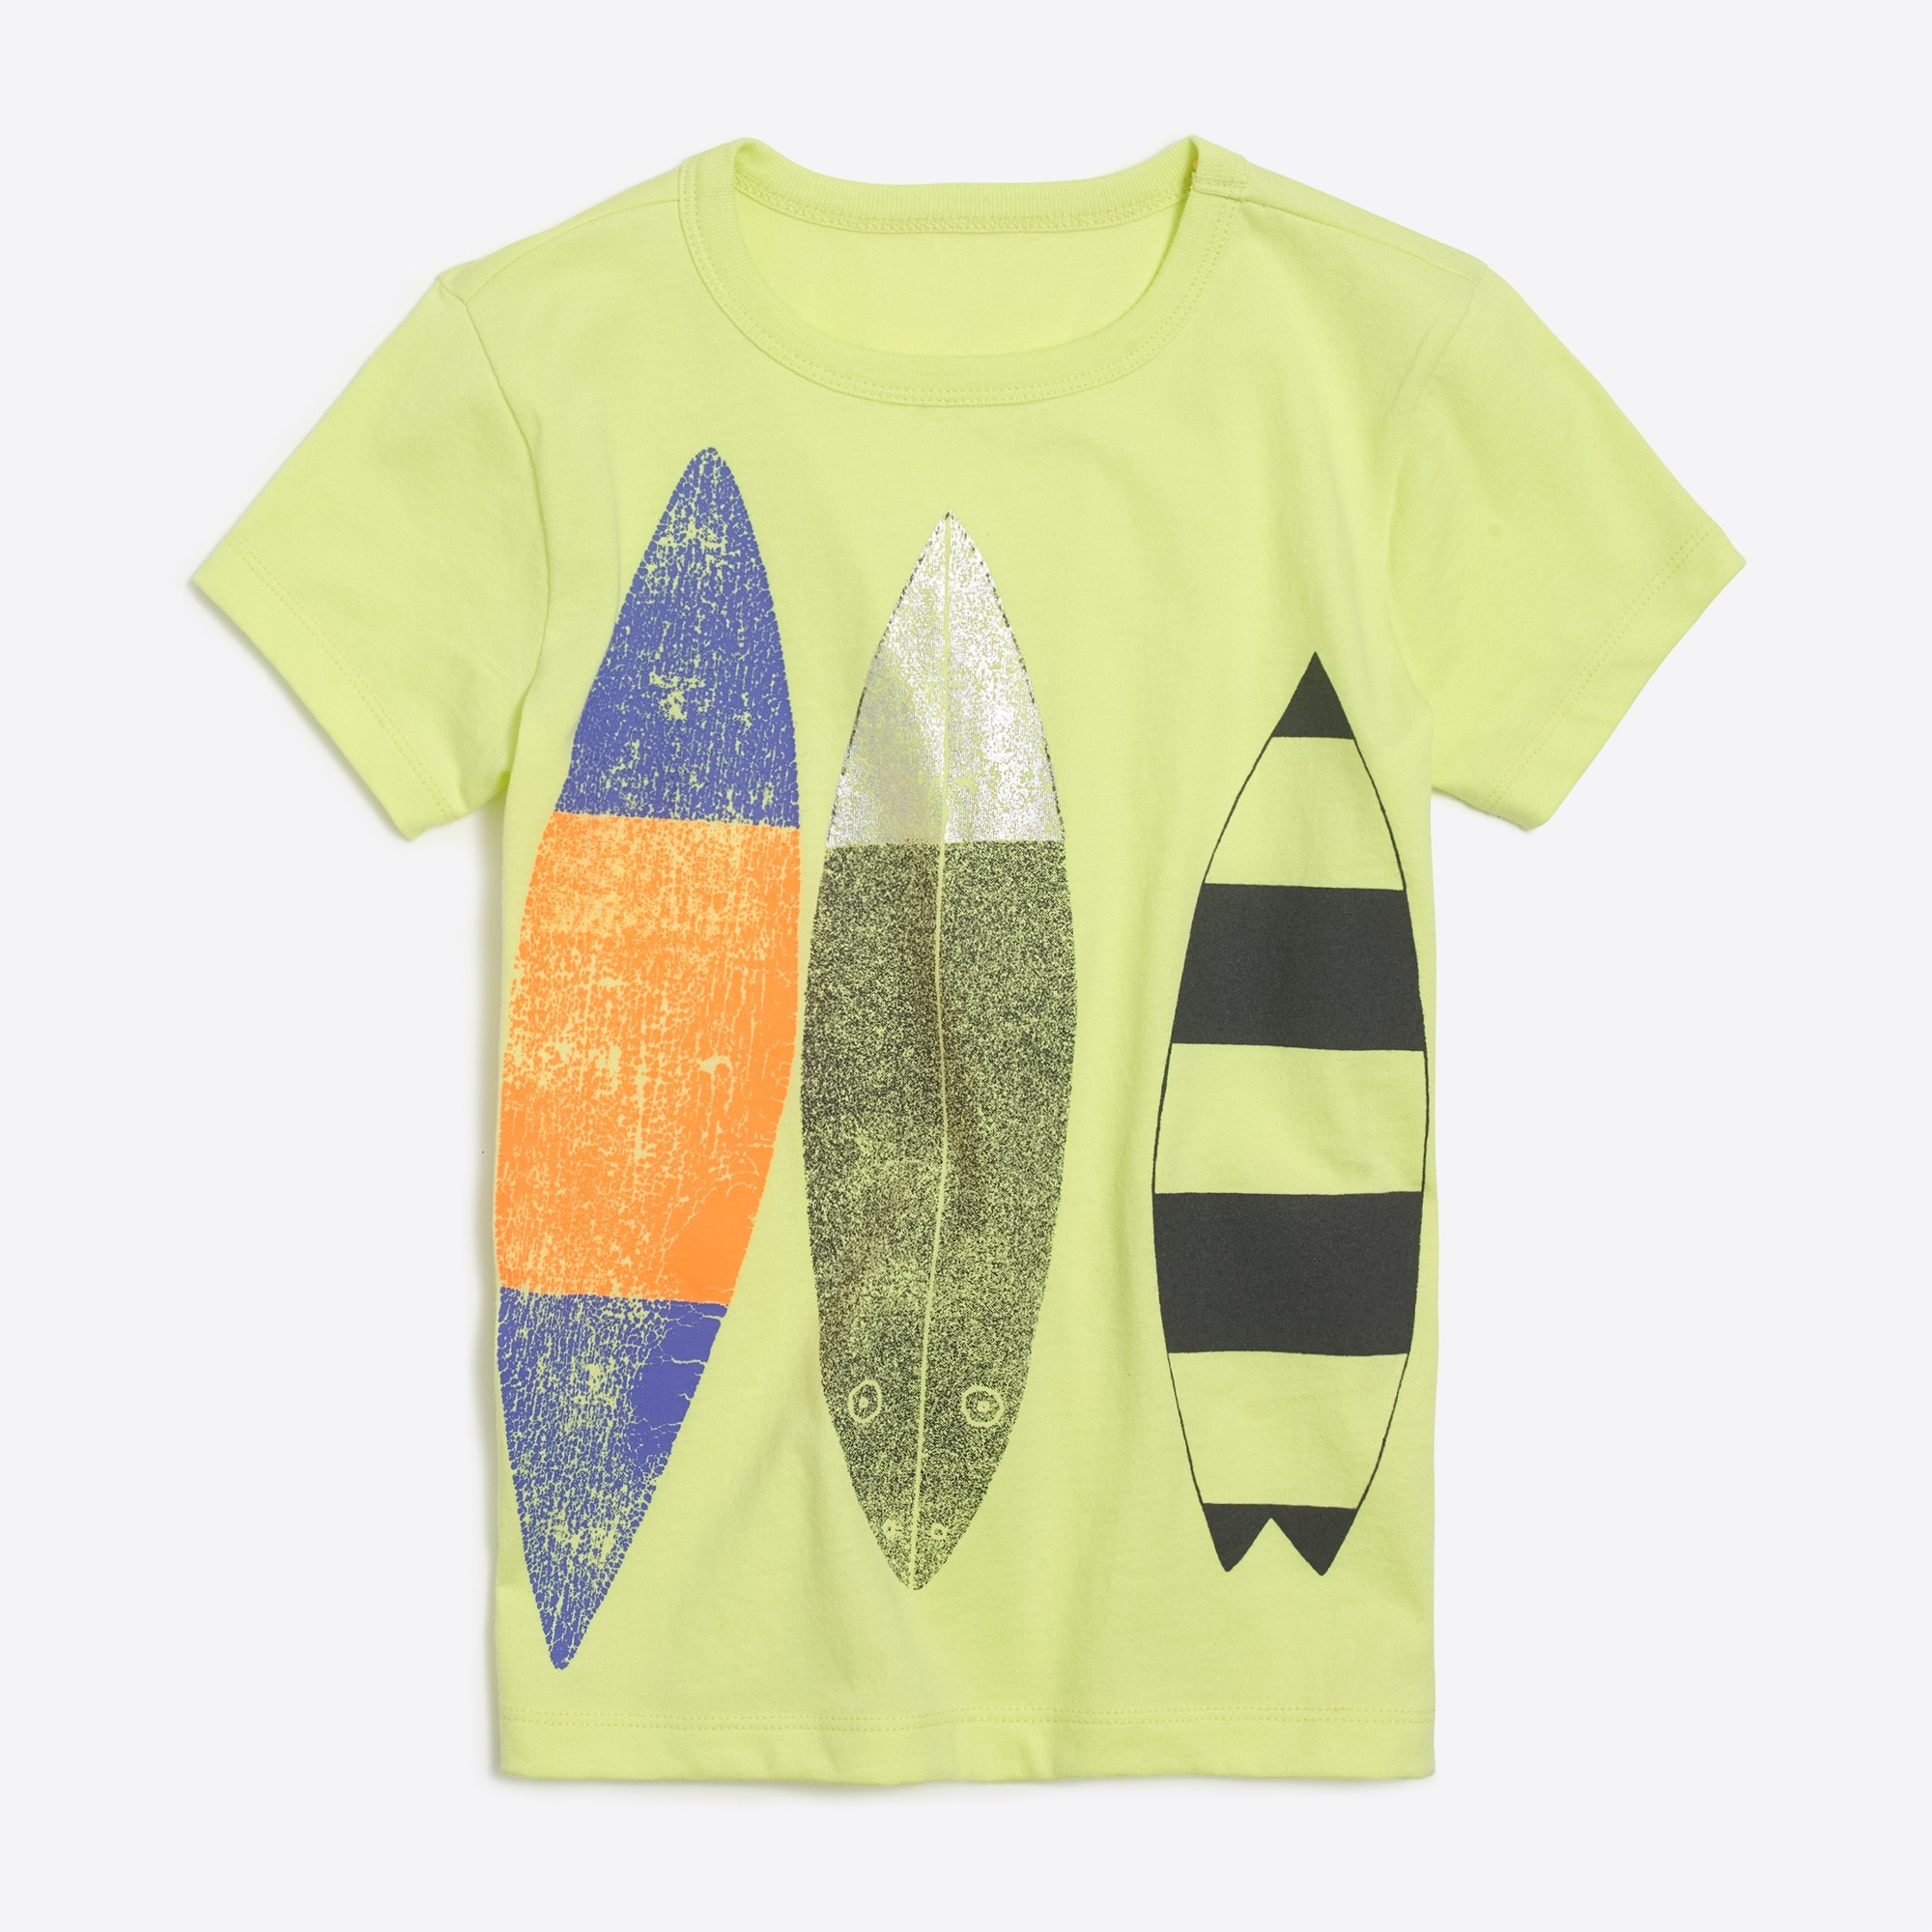 Boys' short-sleeve surfboards graphic T-shirt factoryboys knits & t-shirts c